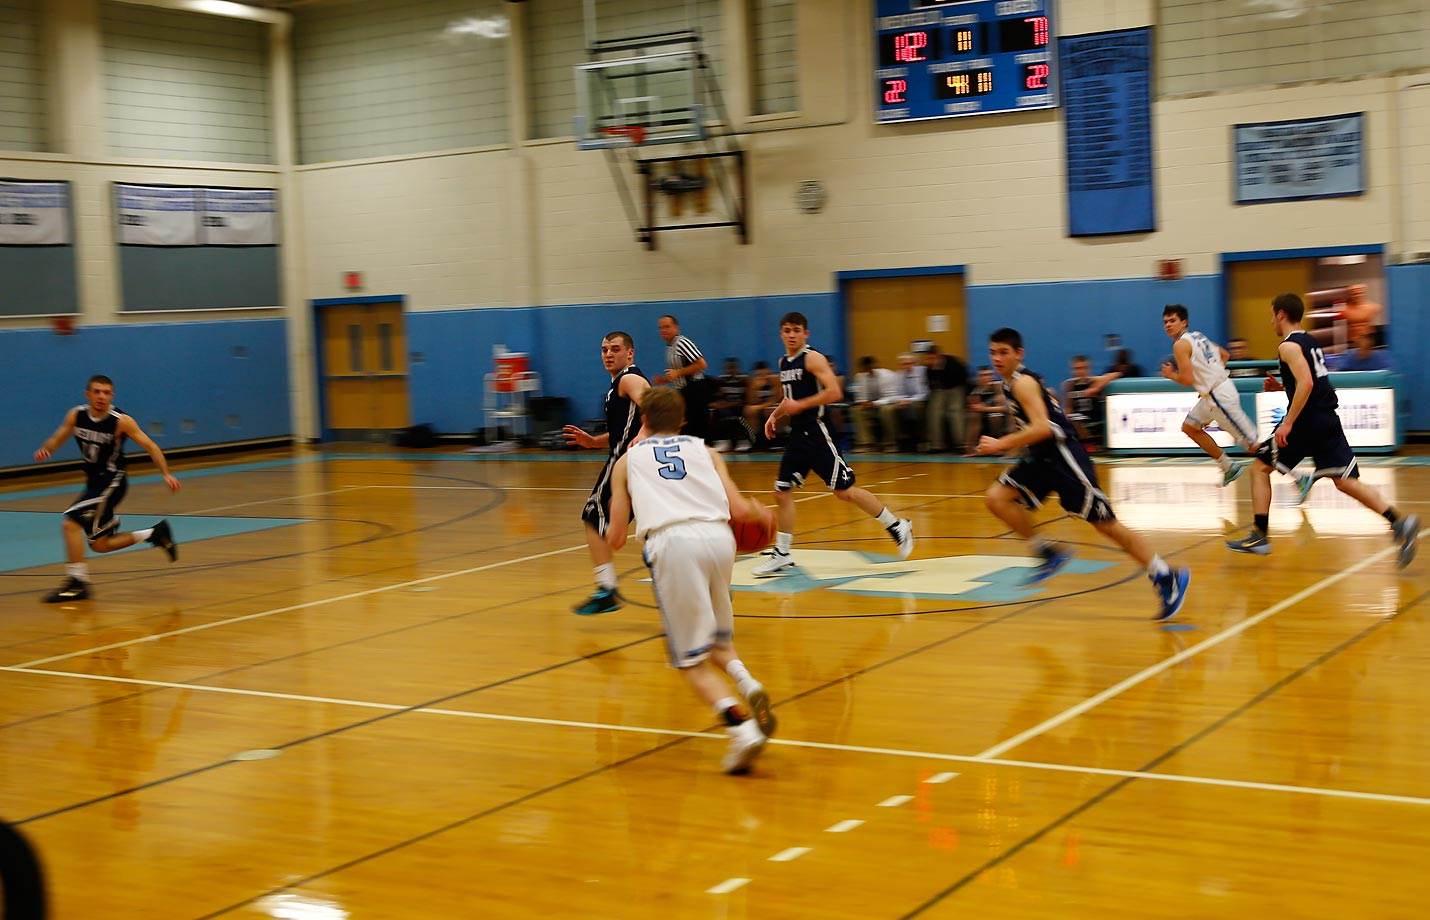 Jack, number 5, helped Big Blue to a 72-53 win over the visiting Medway Mustangs.